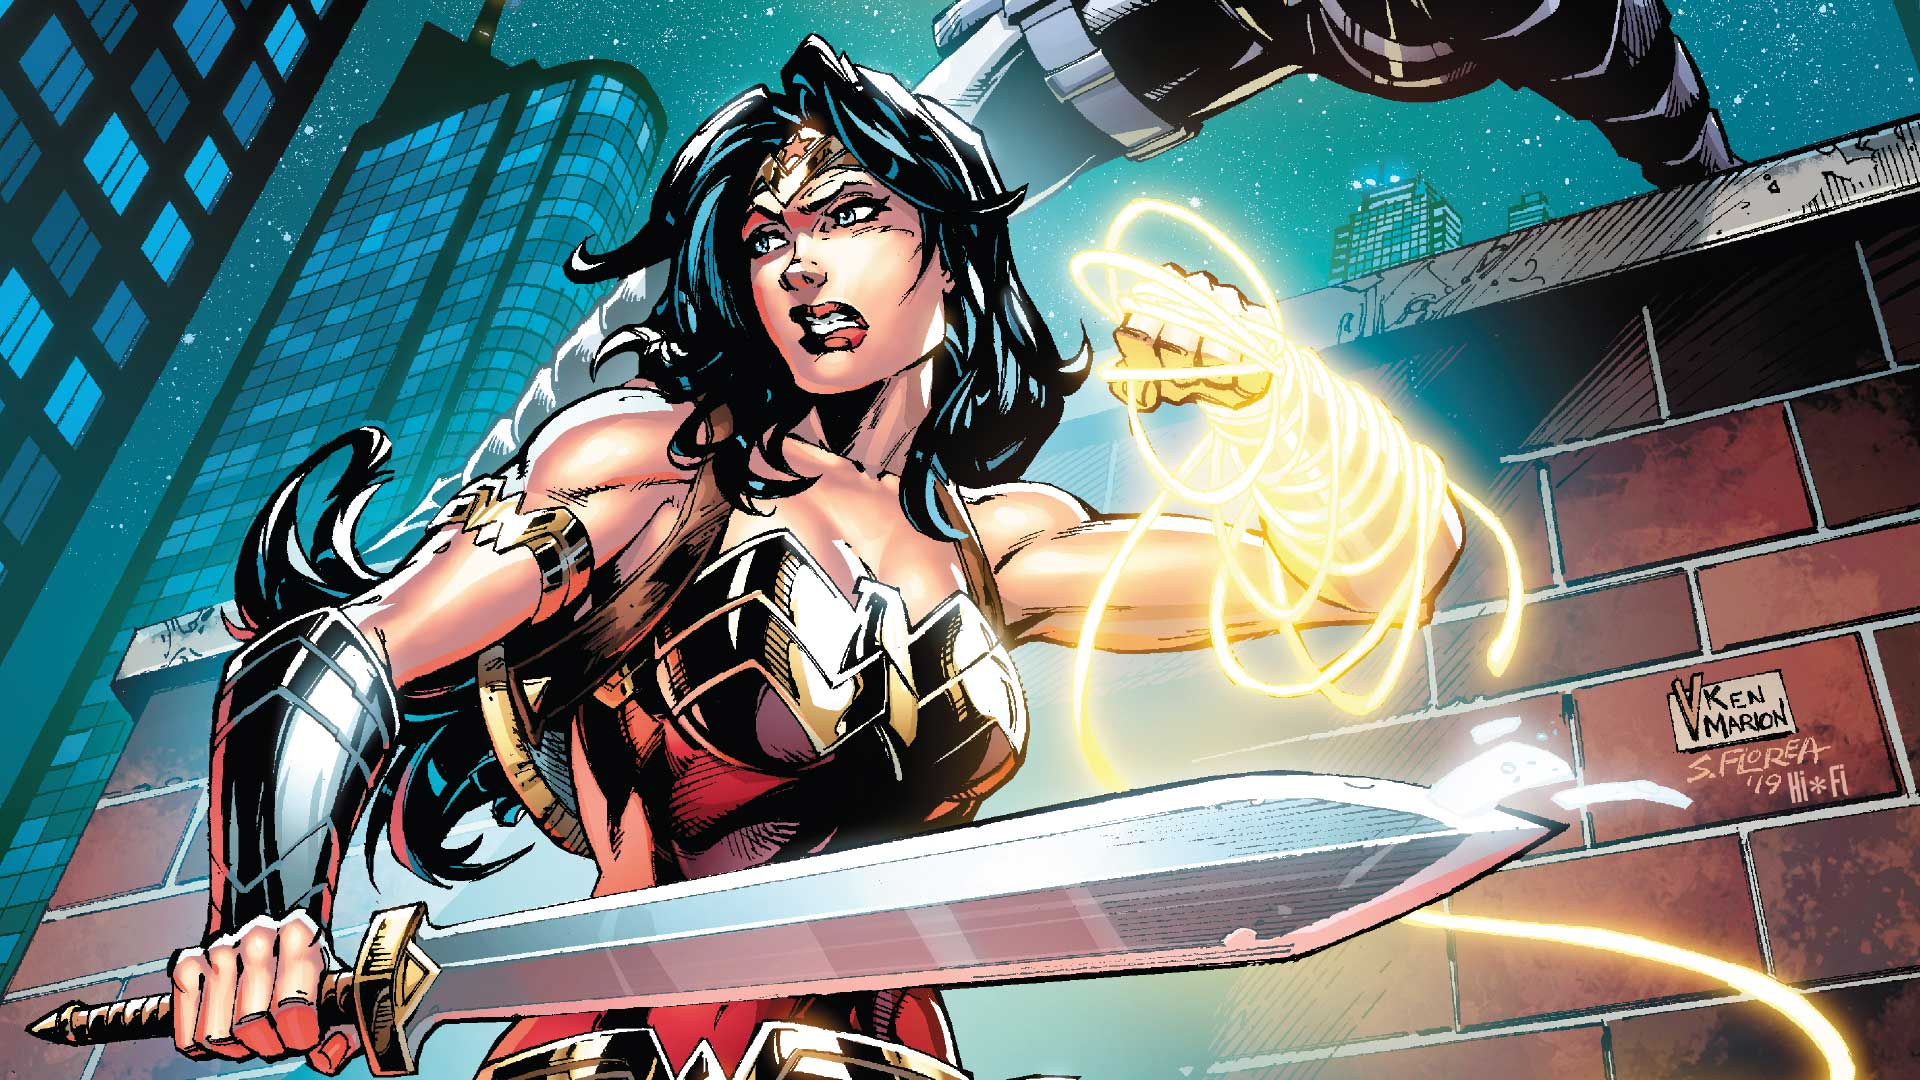 First Look: Wonder Woman Comes Face to Face with the Cheetah